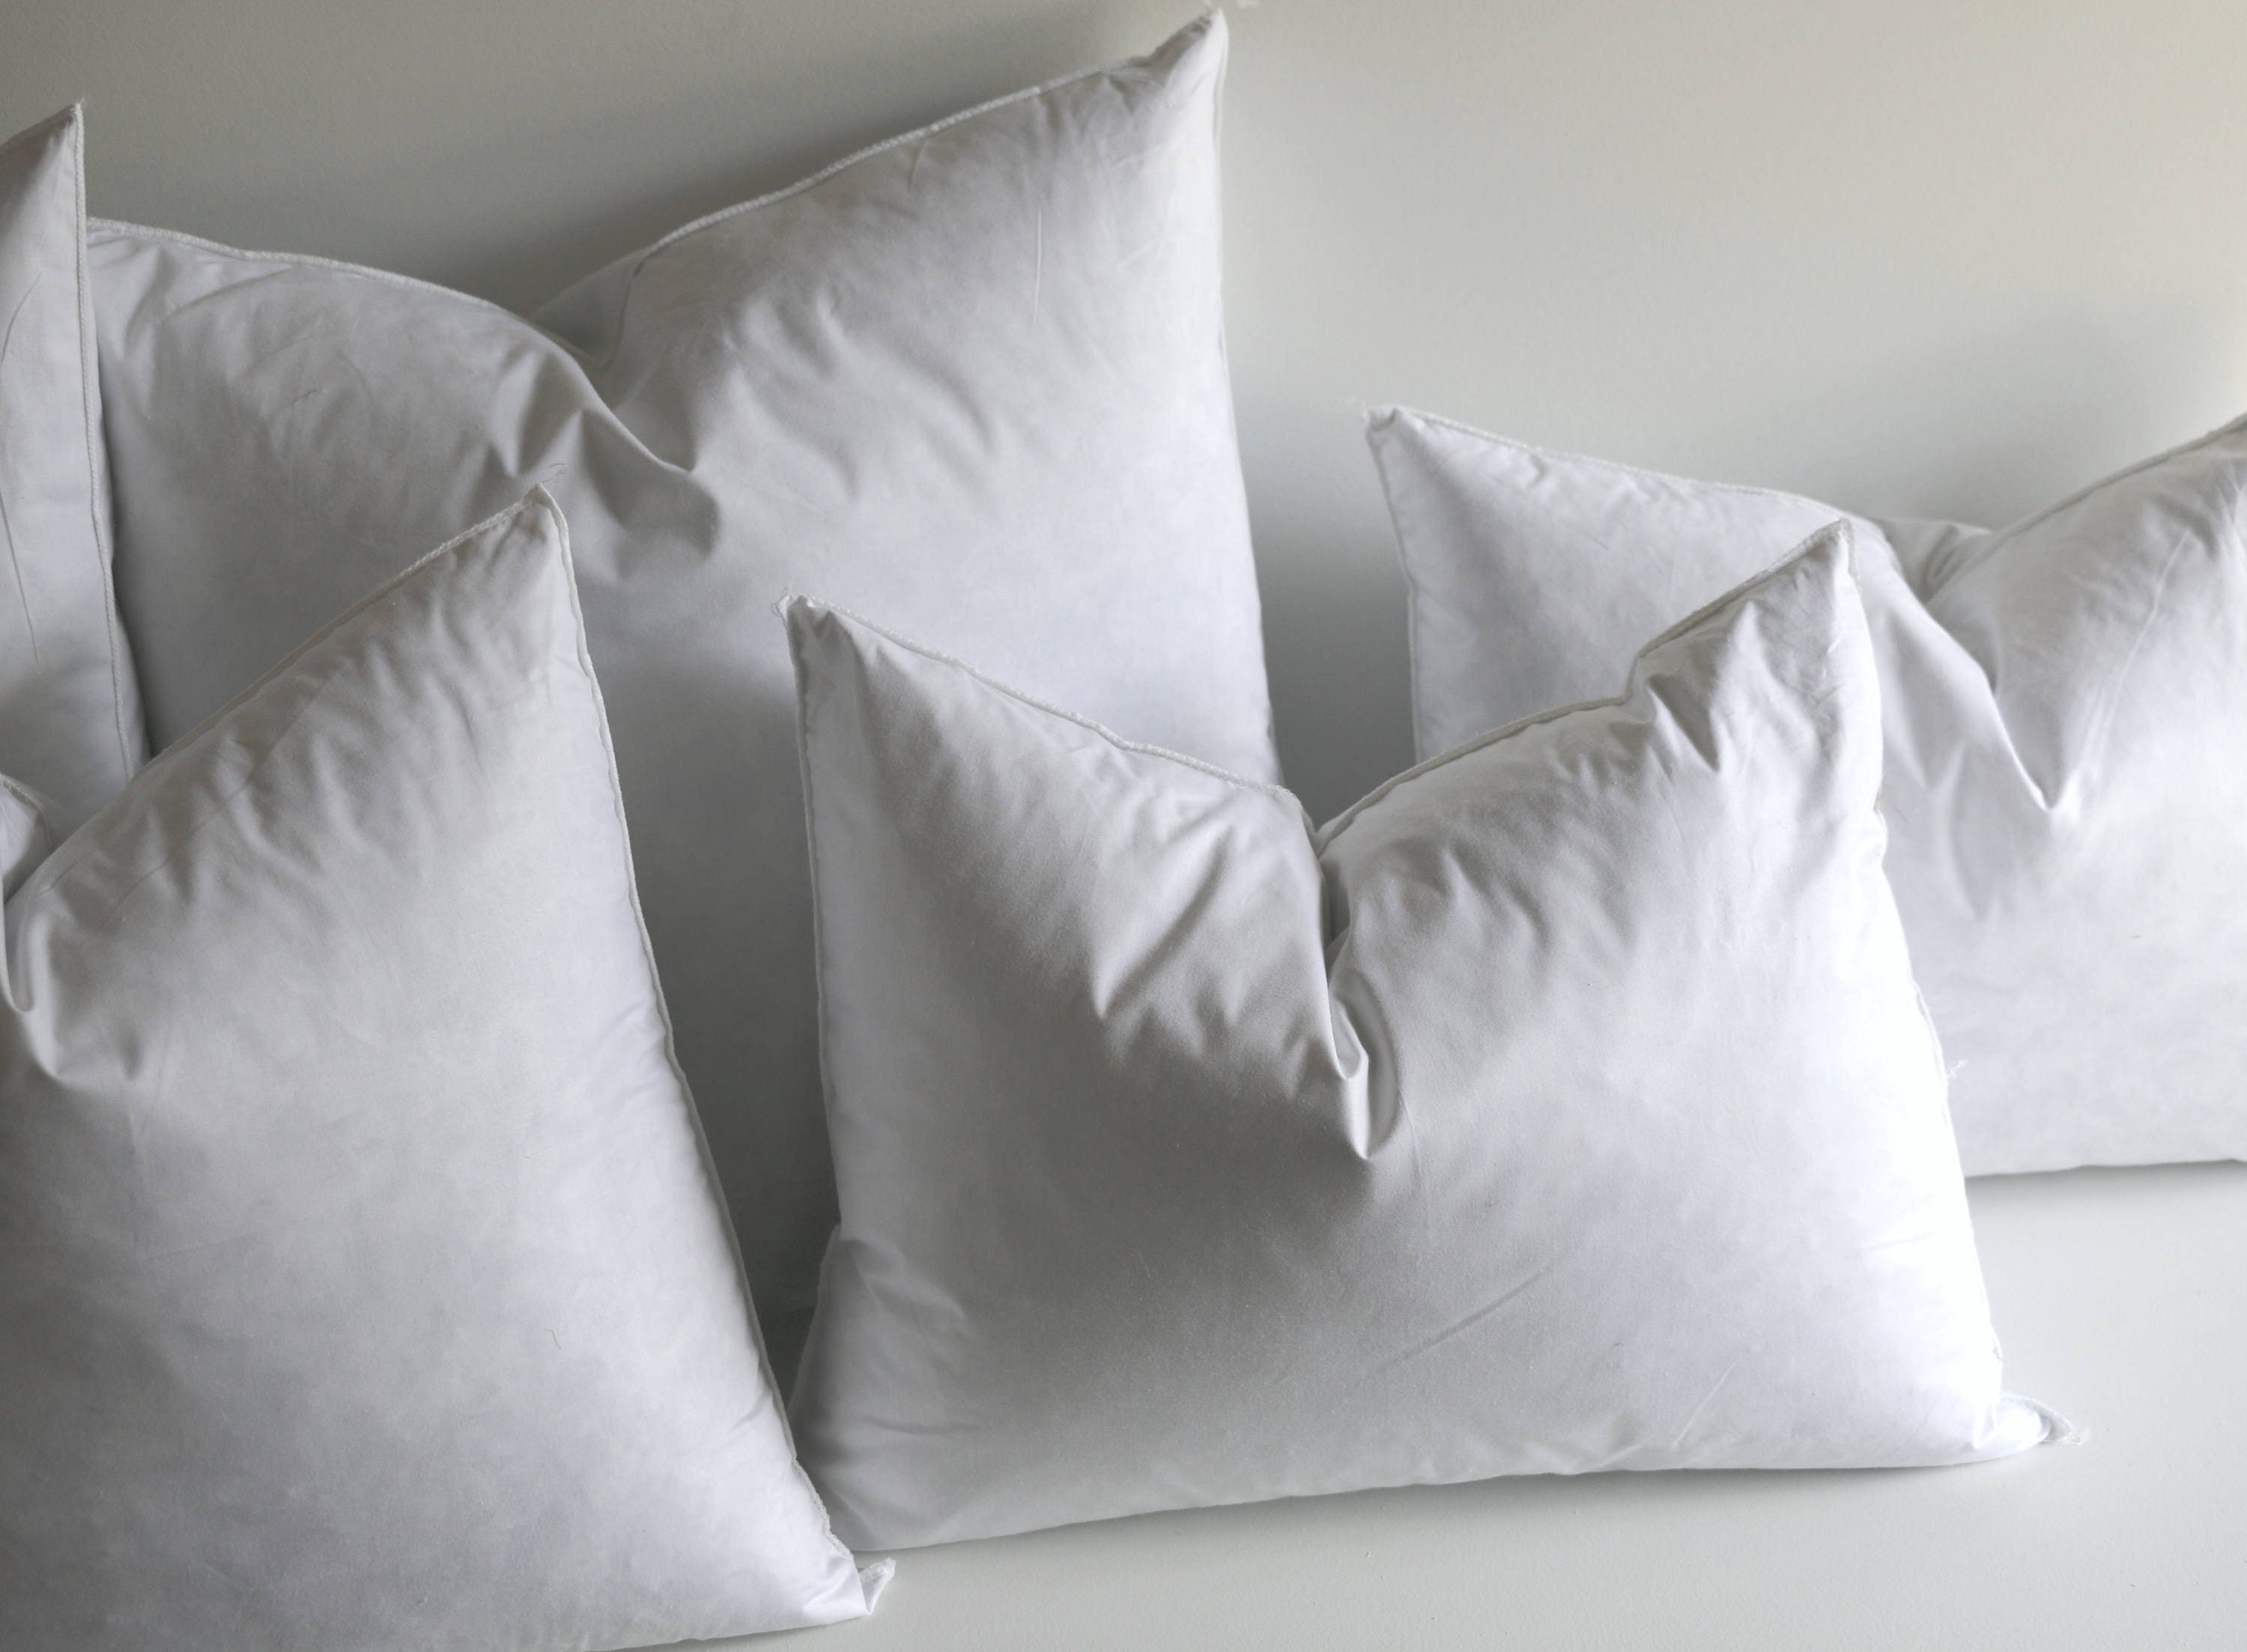 htm tap brunelli pillows to products click enlarge accessories feather and down pillow duvets e filler